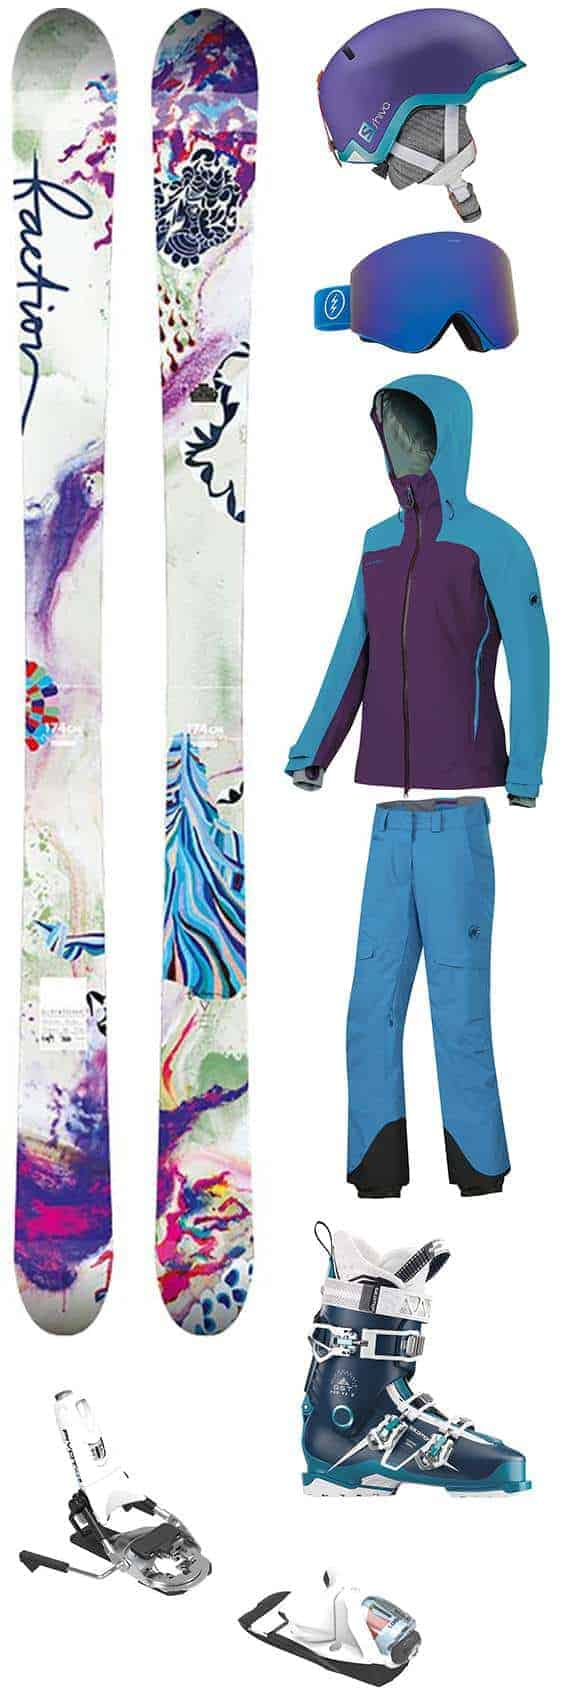 Snowboard Outfit | Ski Outfit | Snow Ski Blue Outfit | Purple Snowboard Outfit